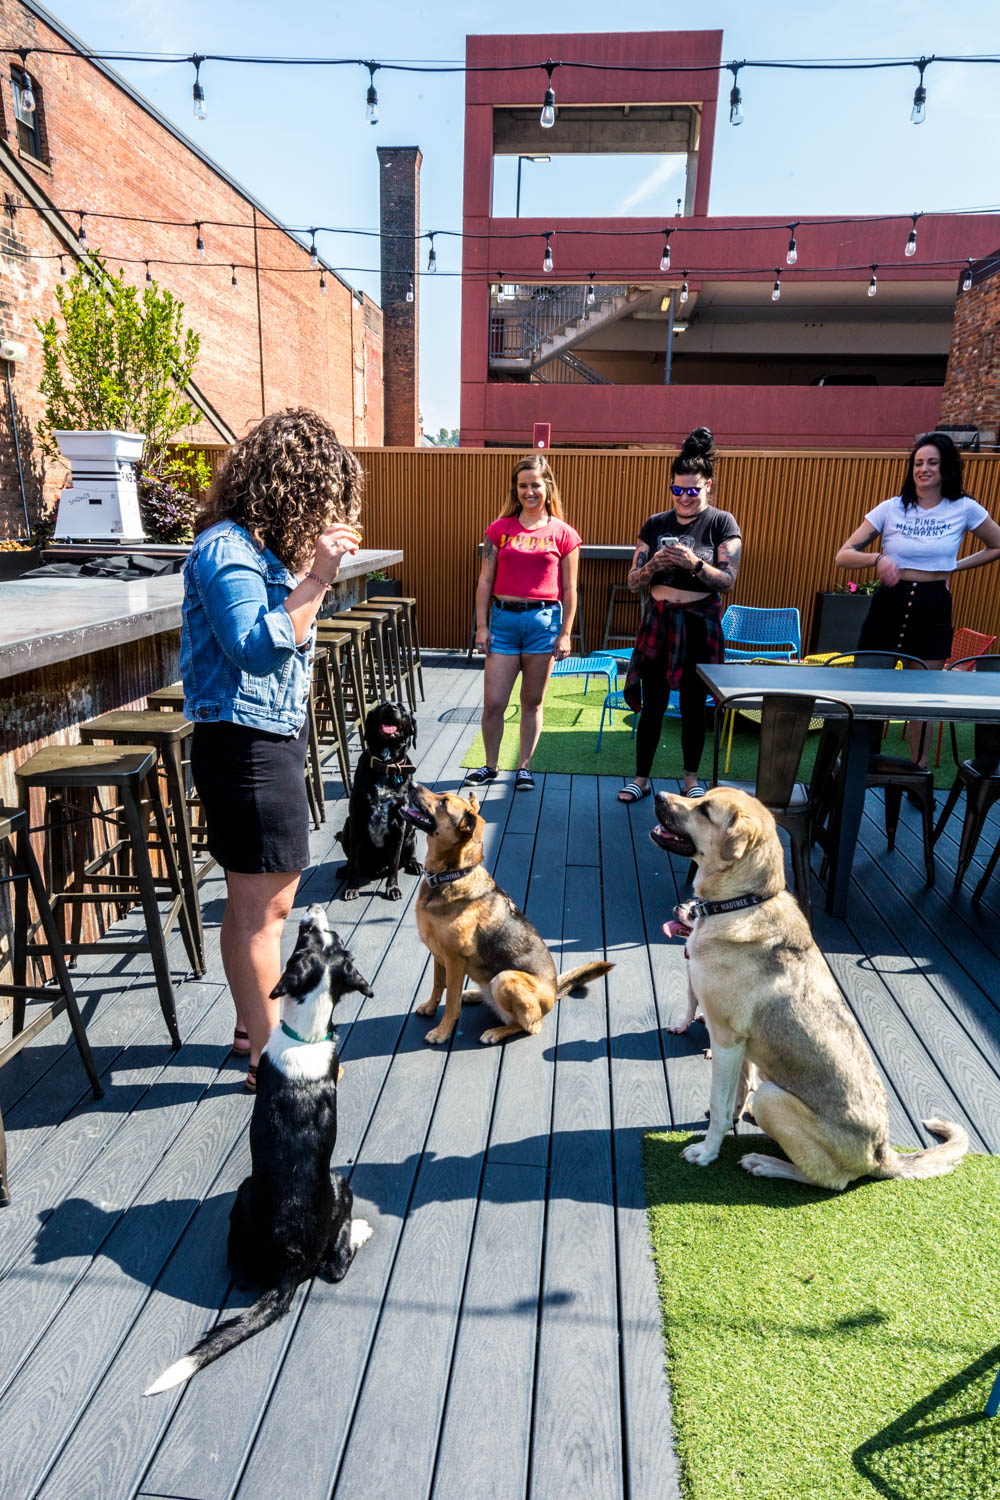 PLACE: Pins Mechanical Company / ADDRESS: 1124 Main Street (Over-the-Rhine) / Introduce your pup to duckpin bowling and a colorful rooftop patio at Pins. The OTR spot is also home to pinball machines, bocce ball, and all sorts of games to make for an amusing outing.{ }/ Image: Catherine Viox // Published: 10.14.19